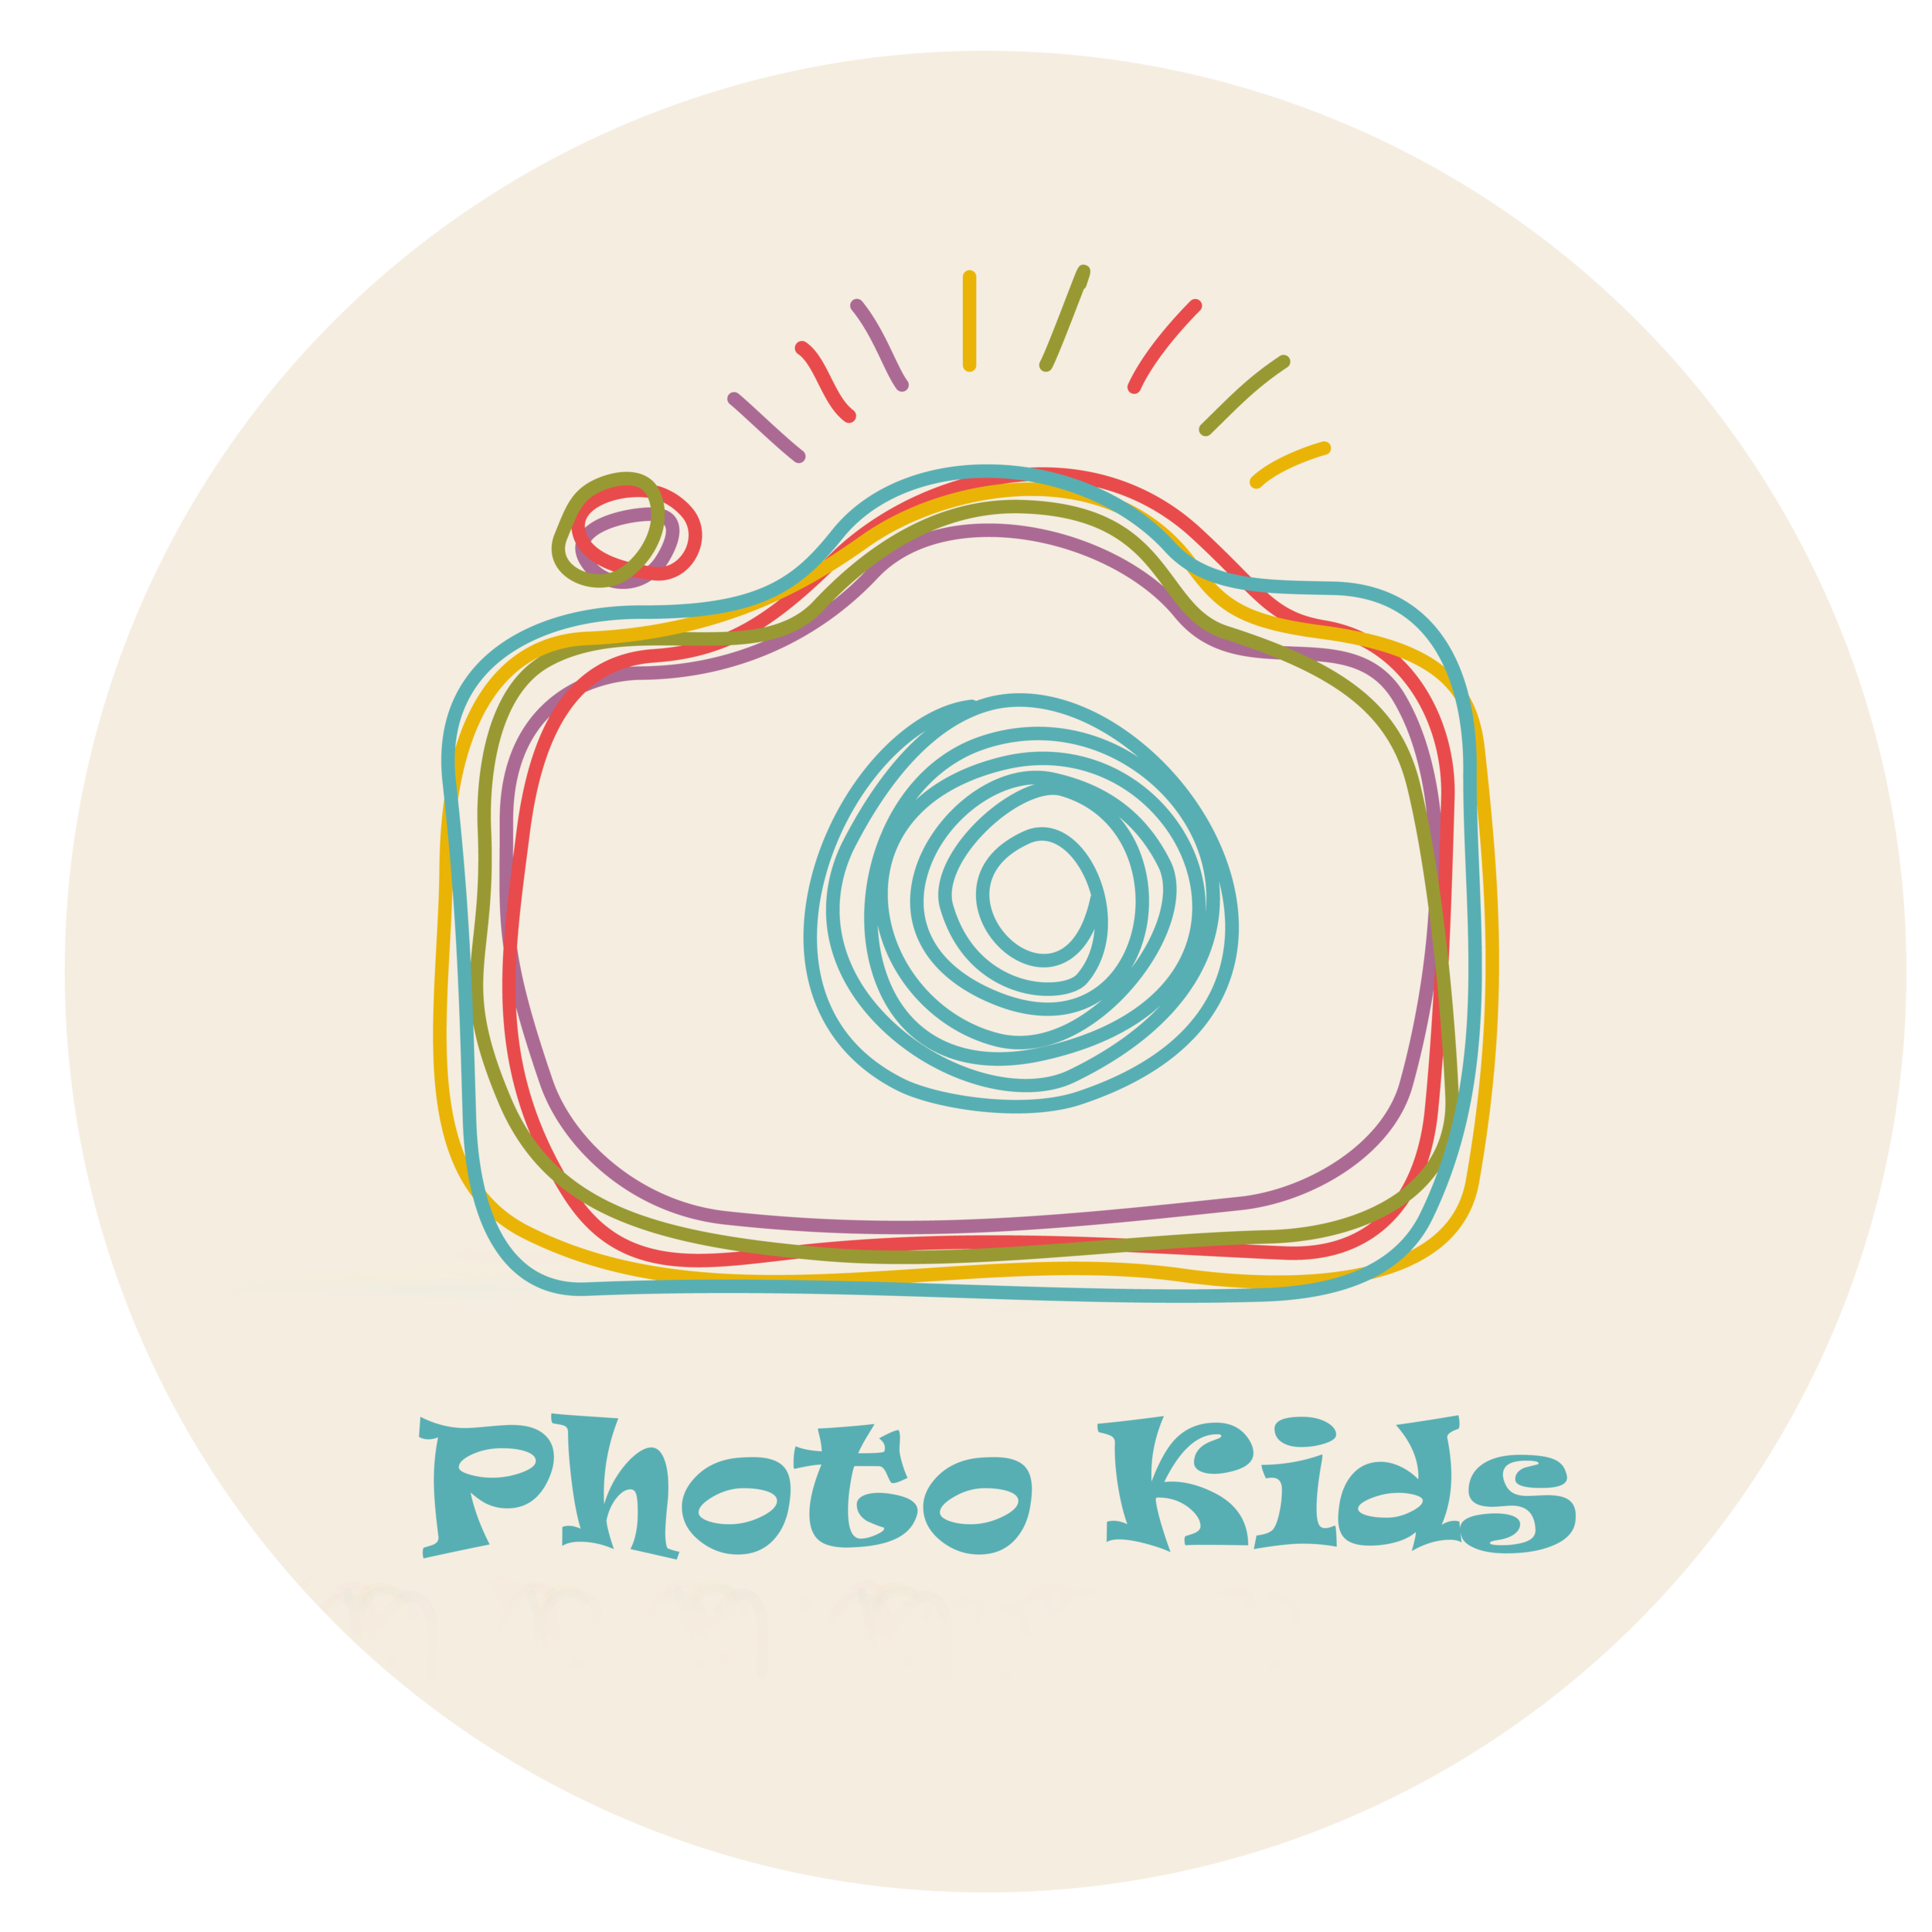 Photo Kids is an enrichment program that implements elementary school education, social and comprehensive skills through visual creativity by utilizing the medium of photography.